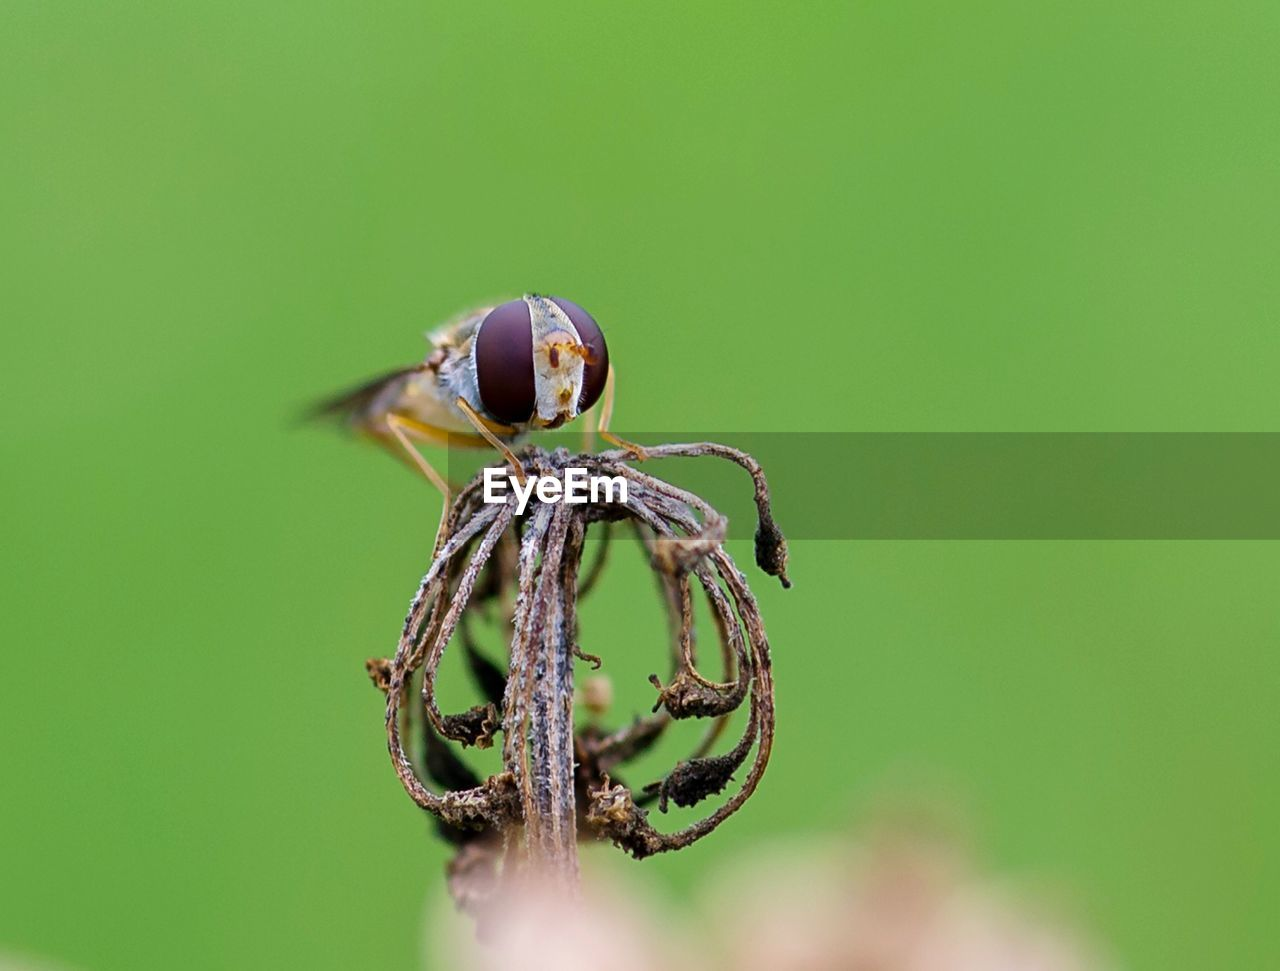 invertebrate, one animal, animal themes, insect, animal, animal wildlife, animals in the wild, close-up, focus on foreground, no people, arachnid, spider, arthropod, nature, copy space, zoology, day, plant, green color, outdoors